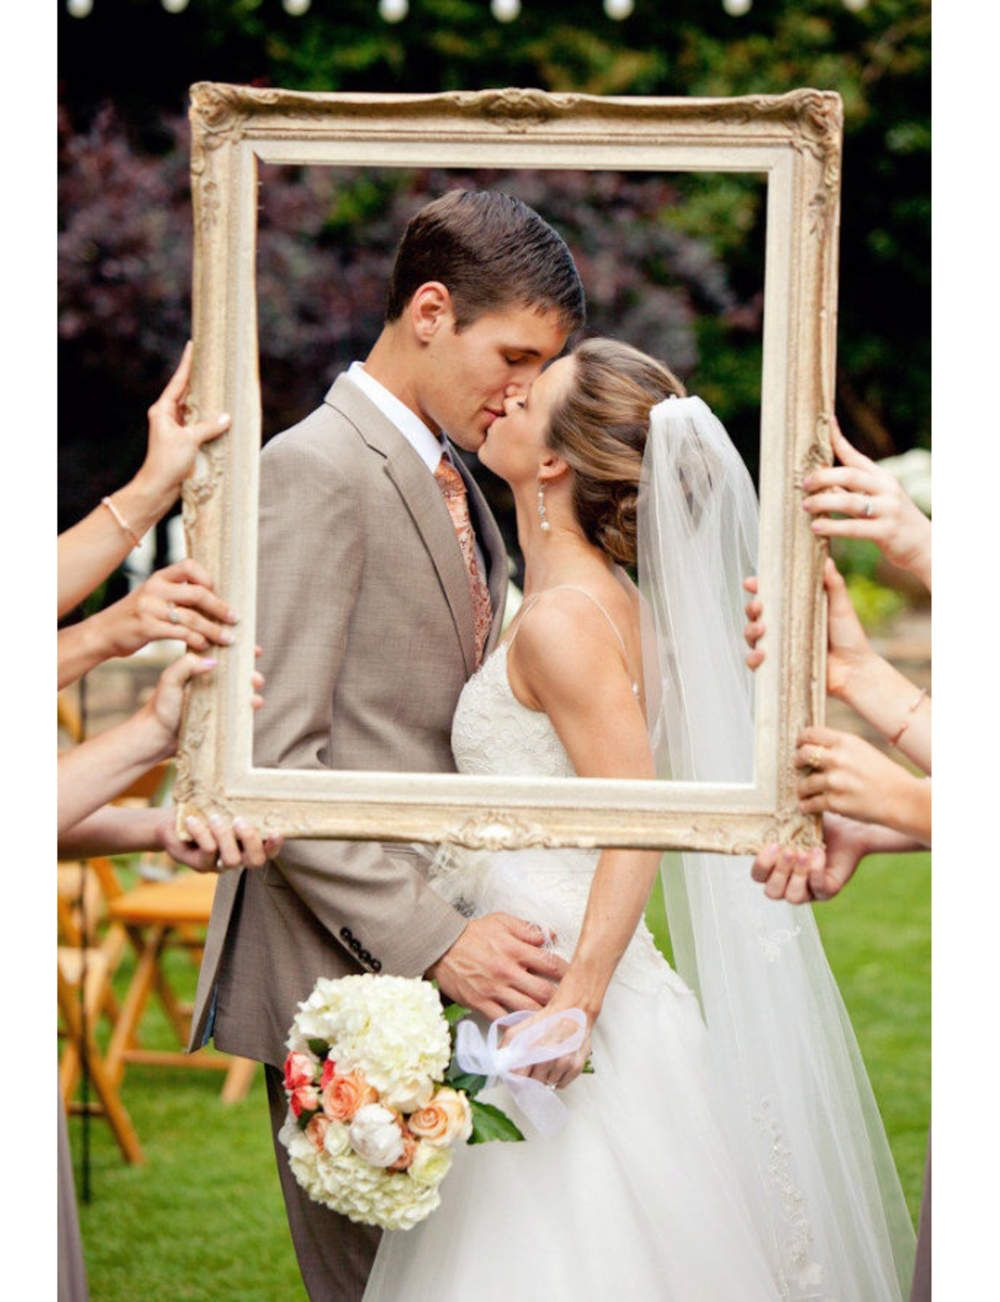 mariage 10 id es de photos de couple originales photos de mariage originales pinterest. Black Bedroom Furniture Sets. Home Design Ideas